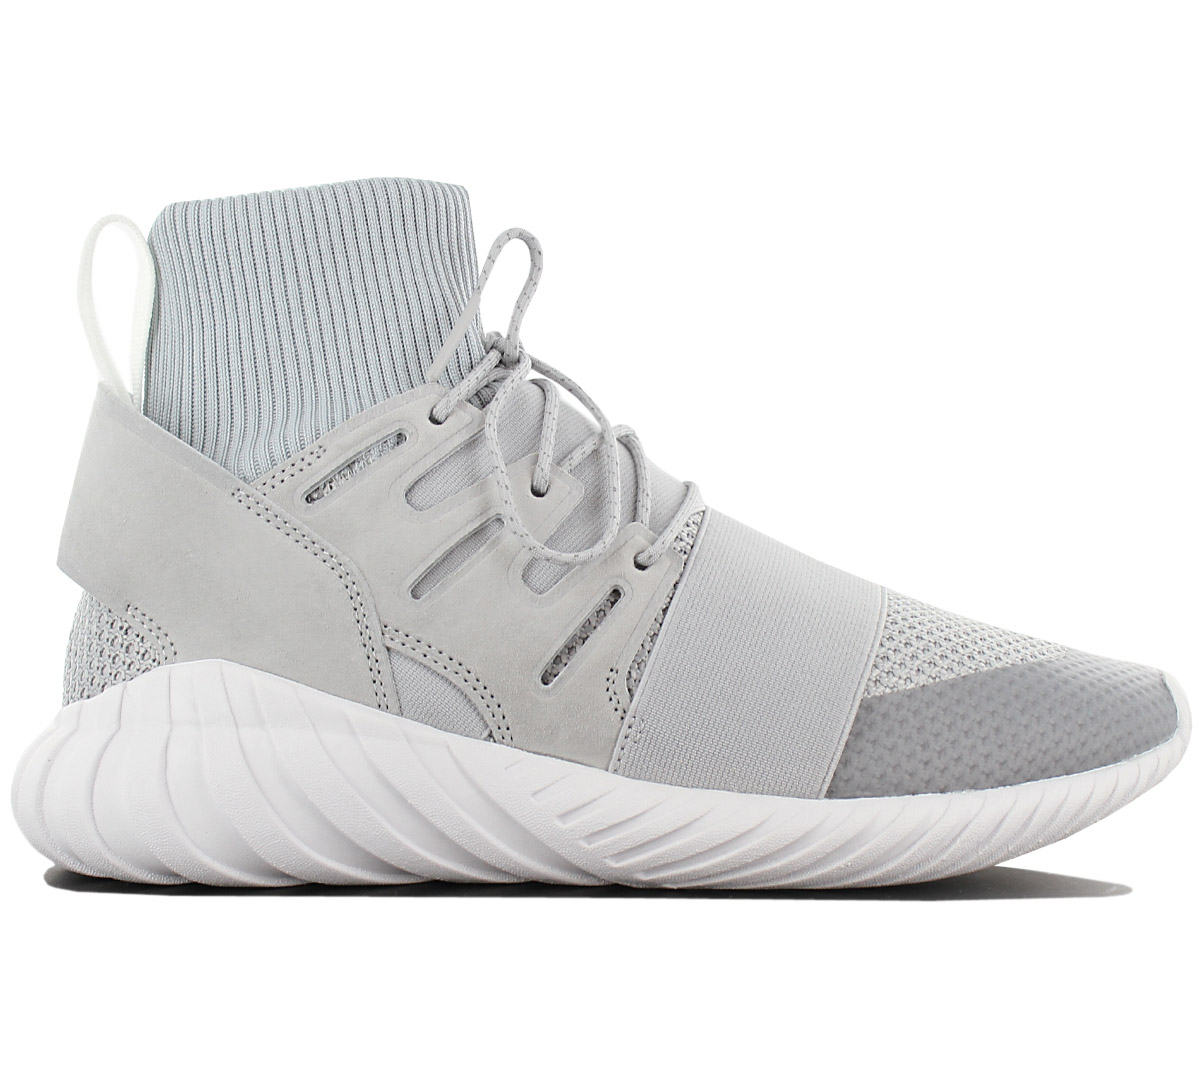 Details about Adidas Originals Tubular Doom